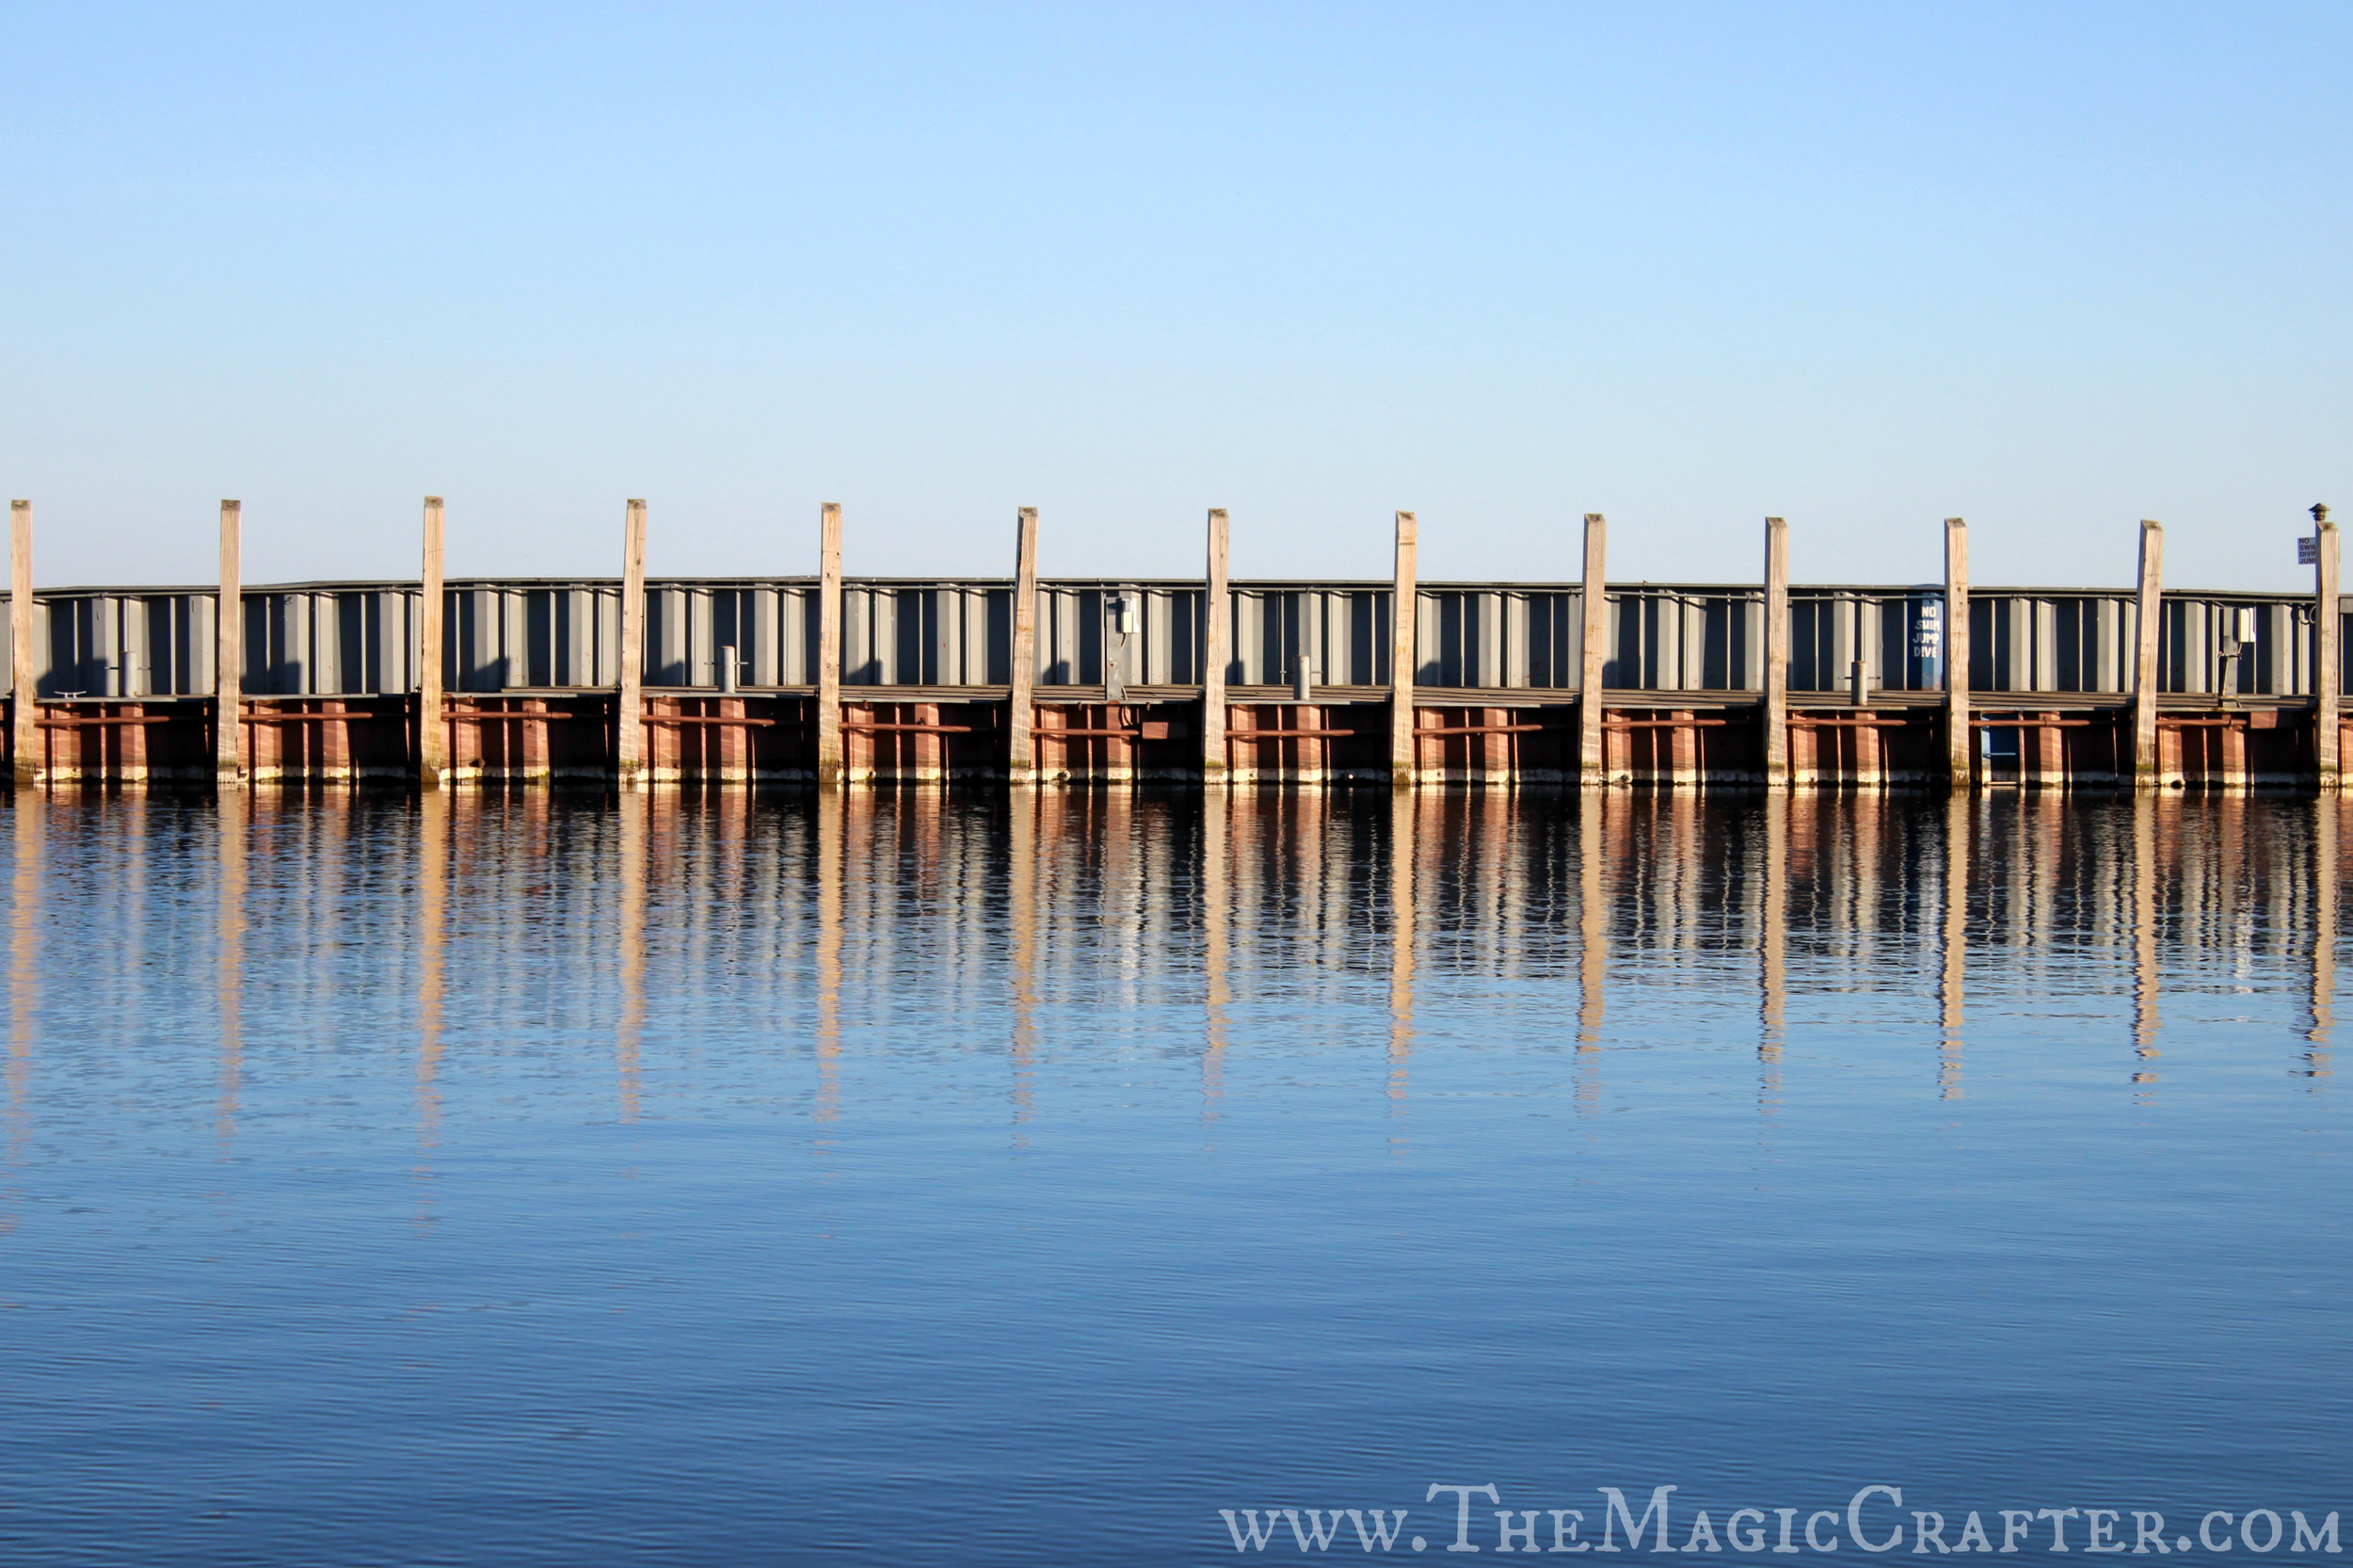 The marina has cleared out quite a bit since the summer ended. Where once many boats were docked the water now flows freely.